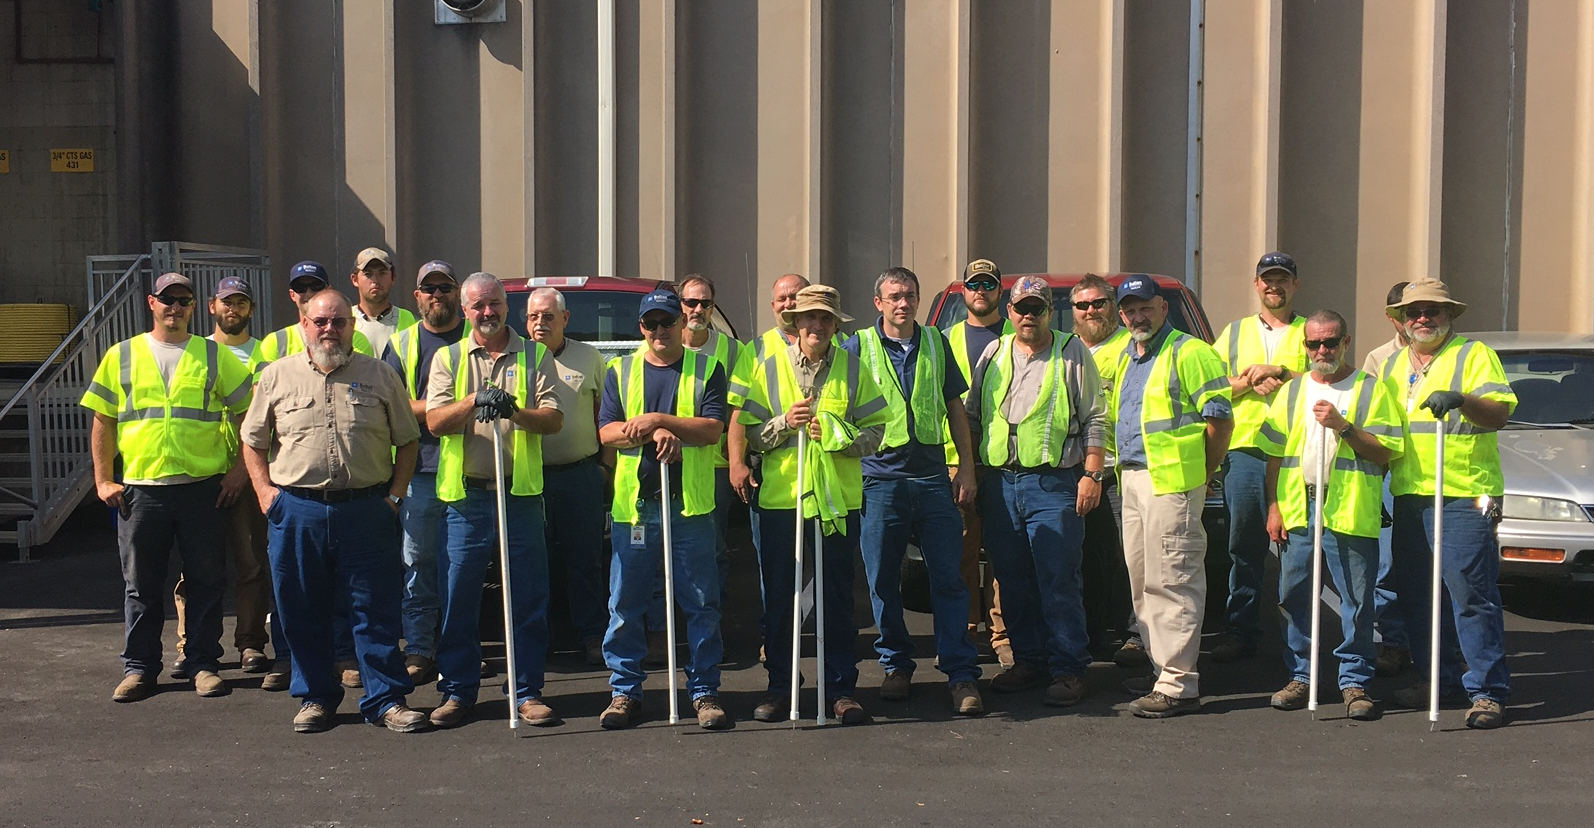 Dalton utilties and oglethope power employees teamed up to clean a mile that they share on a daily basis.